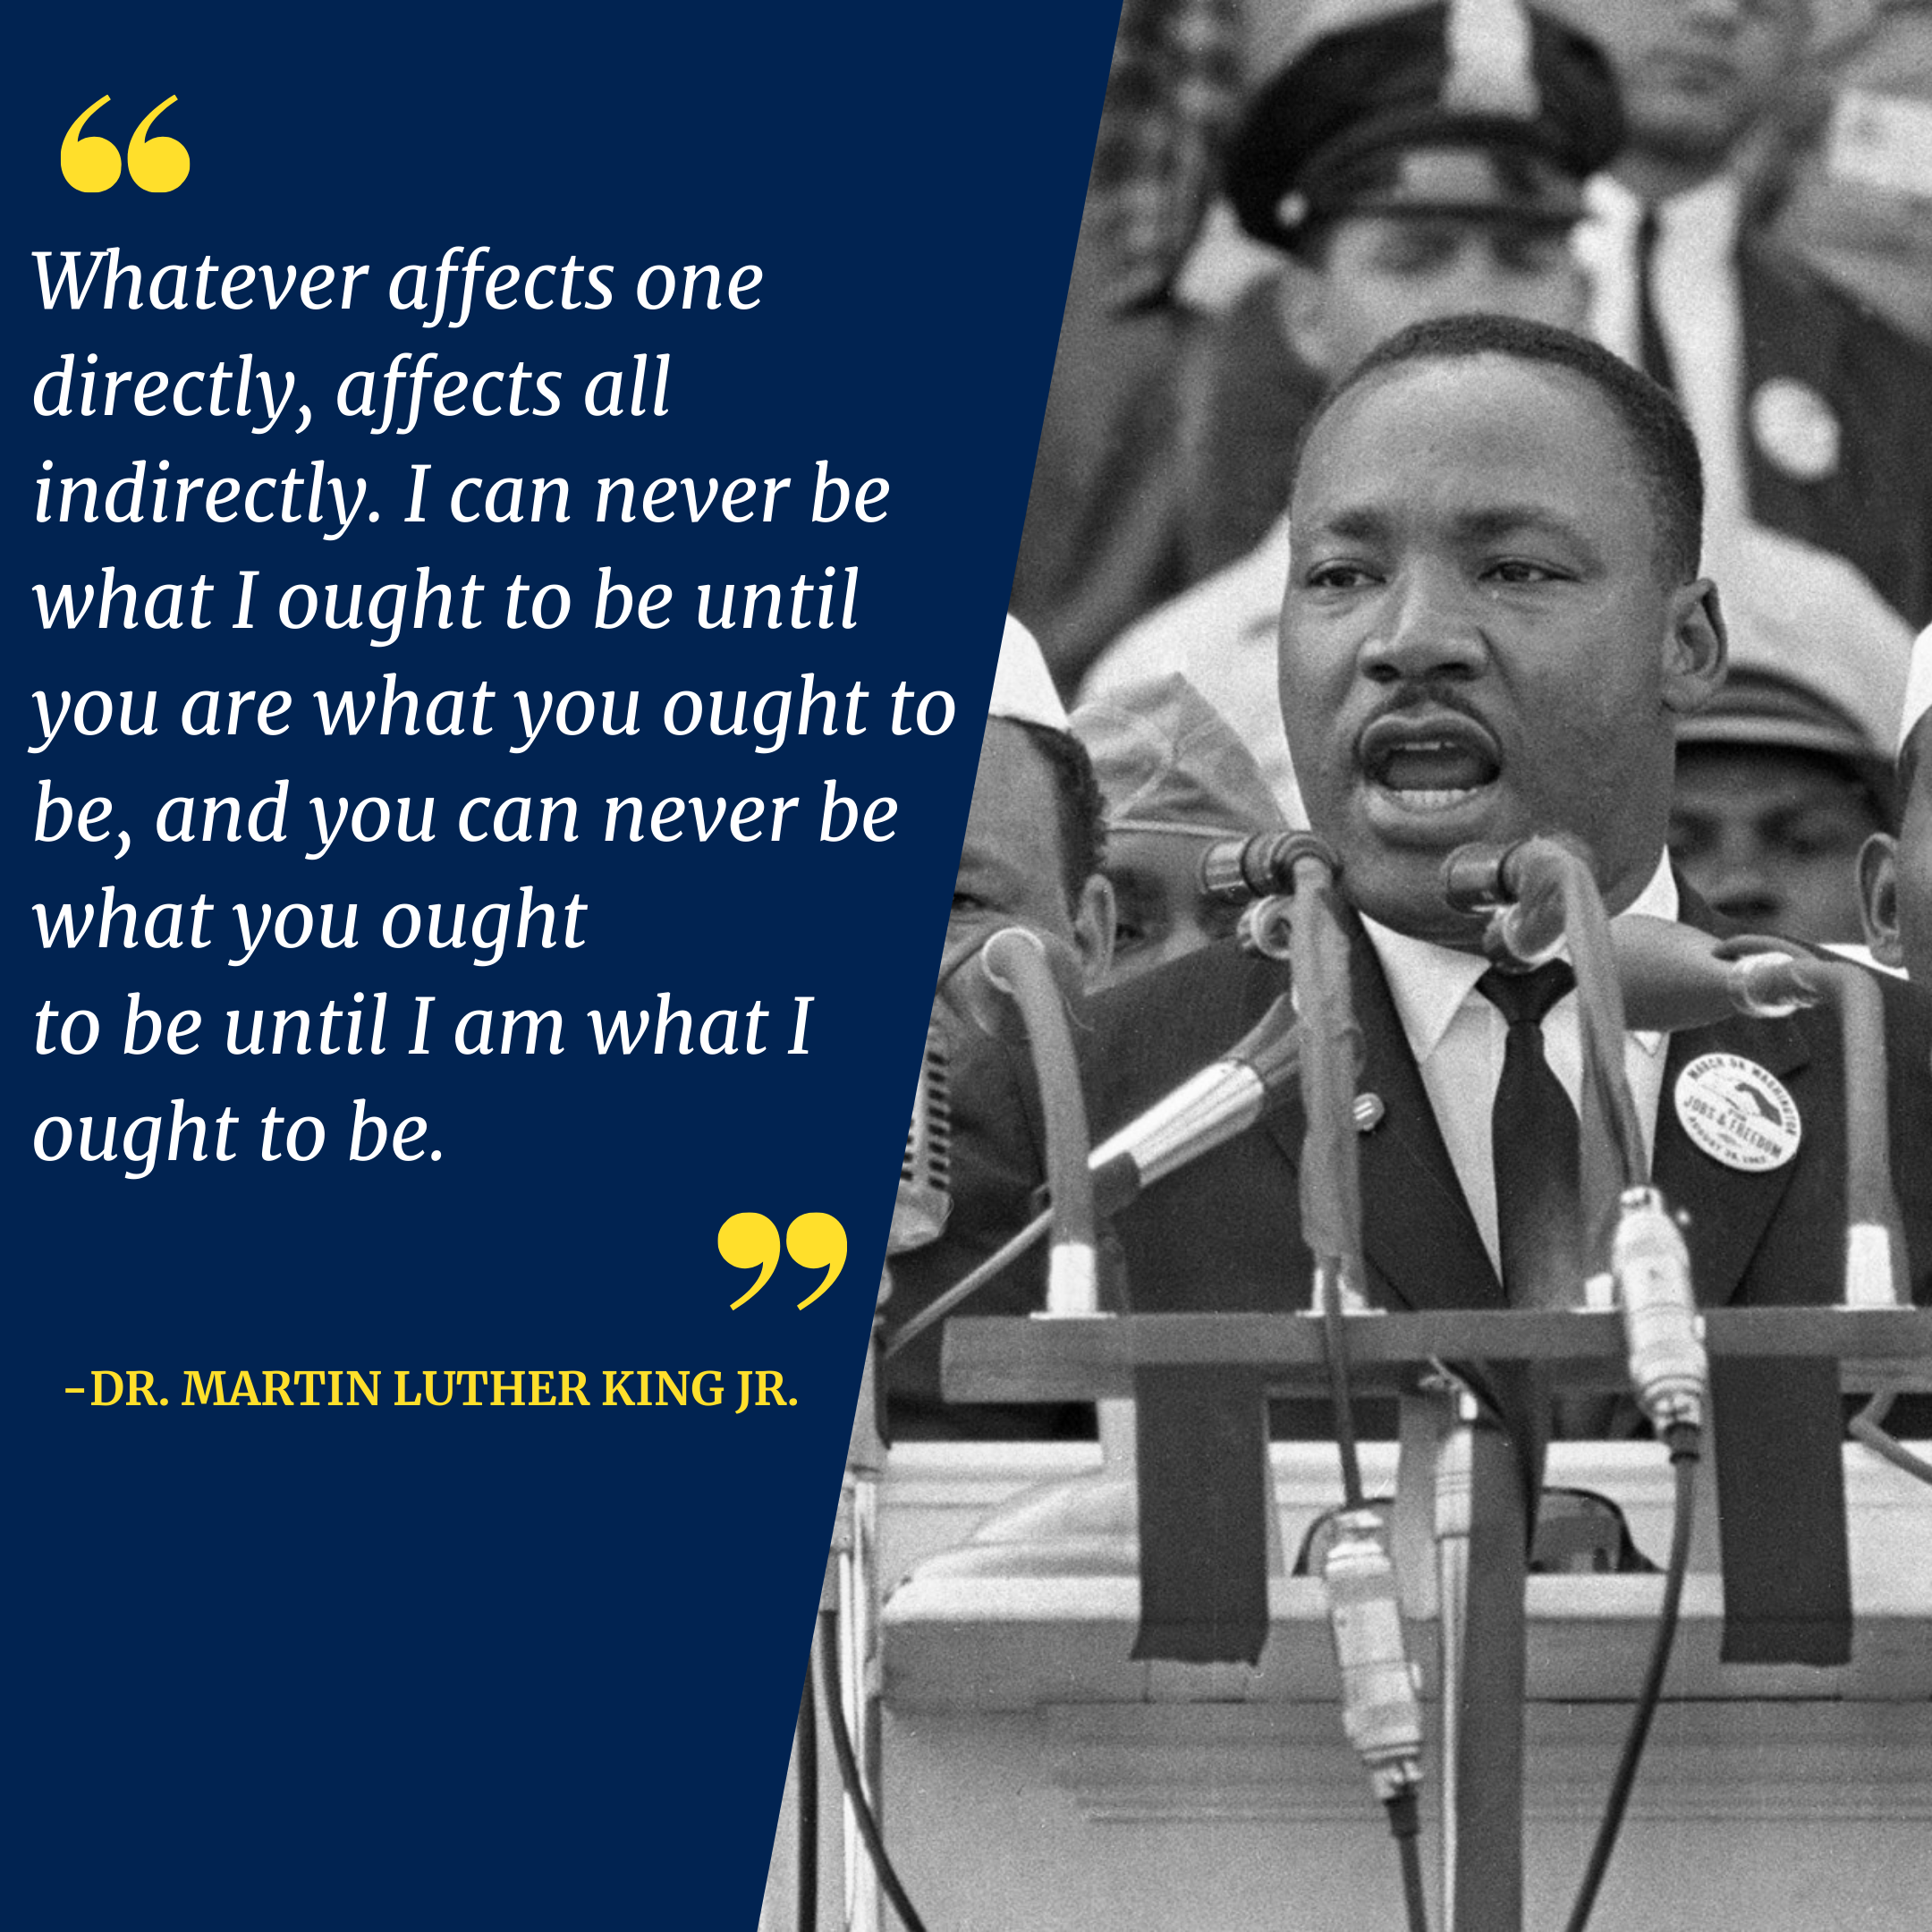 Image with a photo of Dr. Martin Luther King Jr and a quote: Whatever affects one directly, affects all indirectly. I can never be what I ought to be until you are what you ought to be, and you can never be what you ought to be until I am what I ought to be.